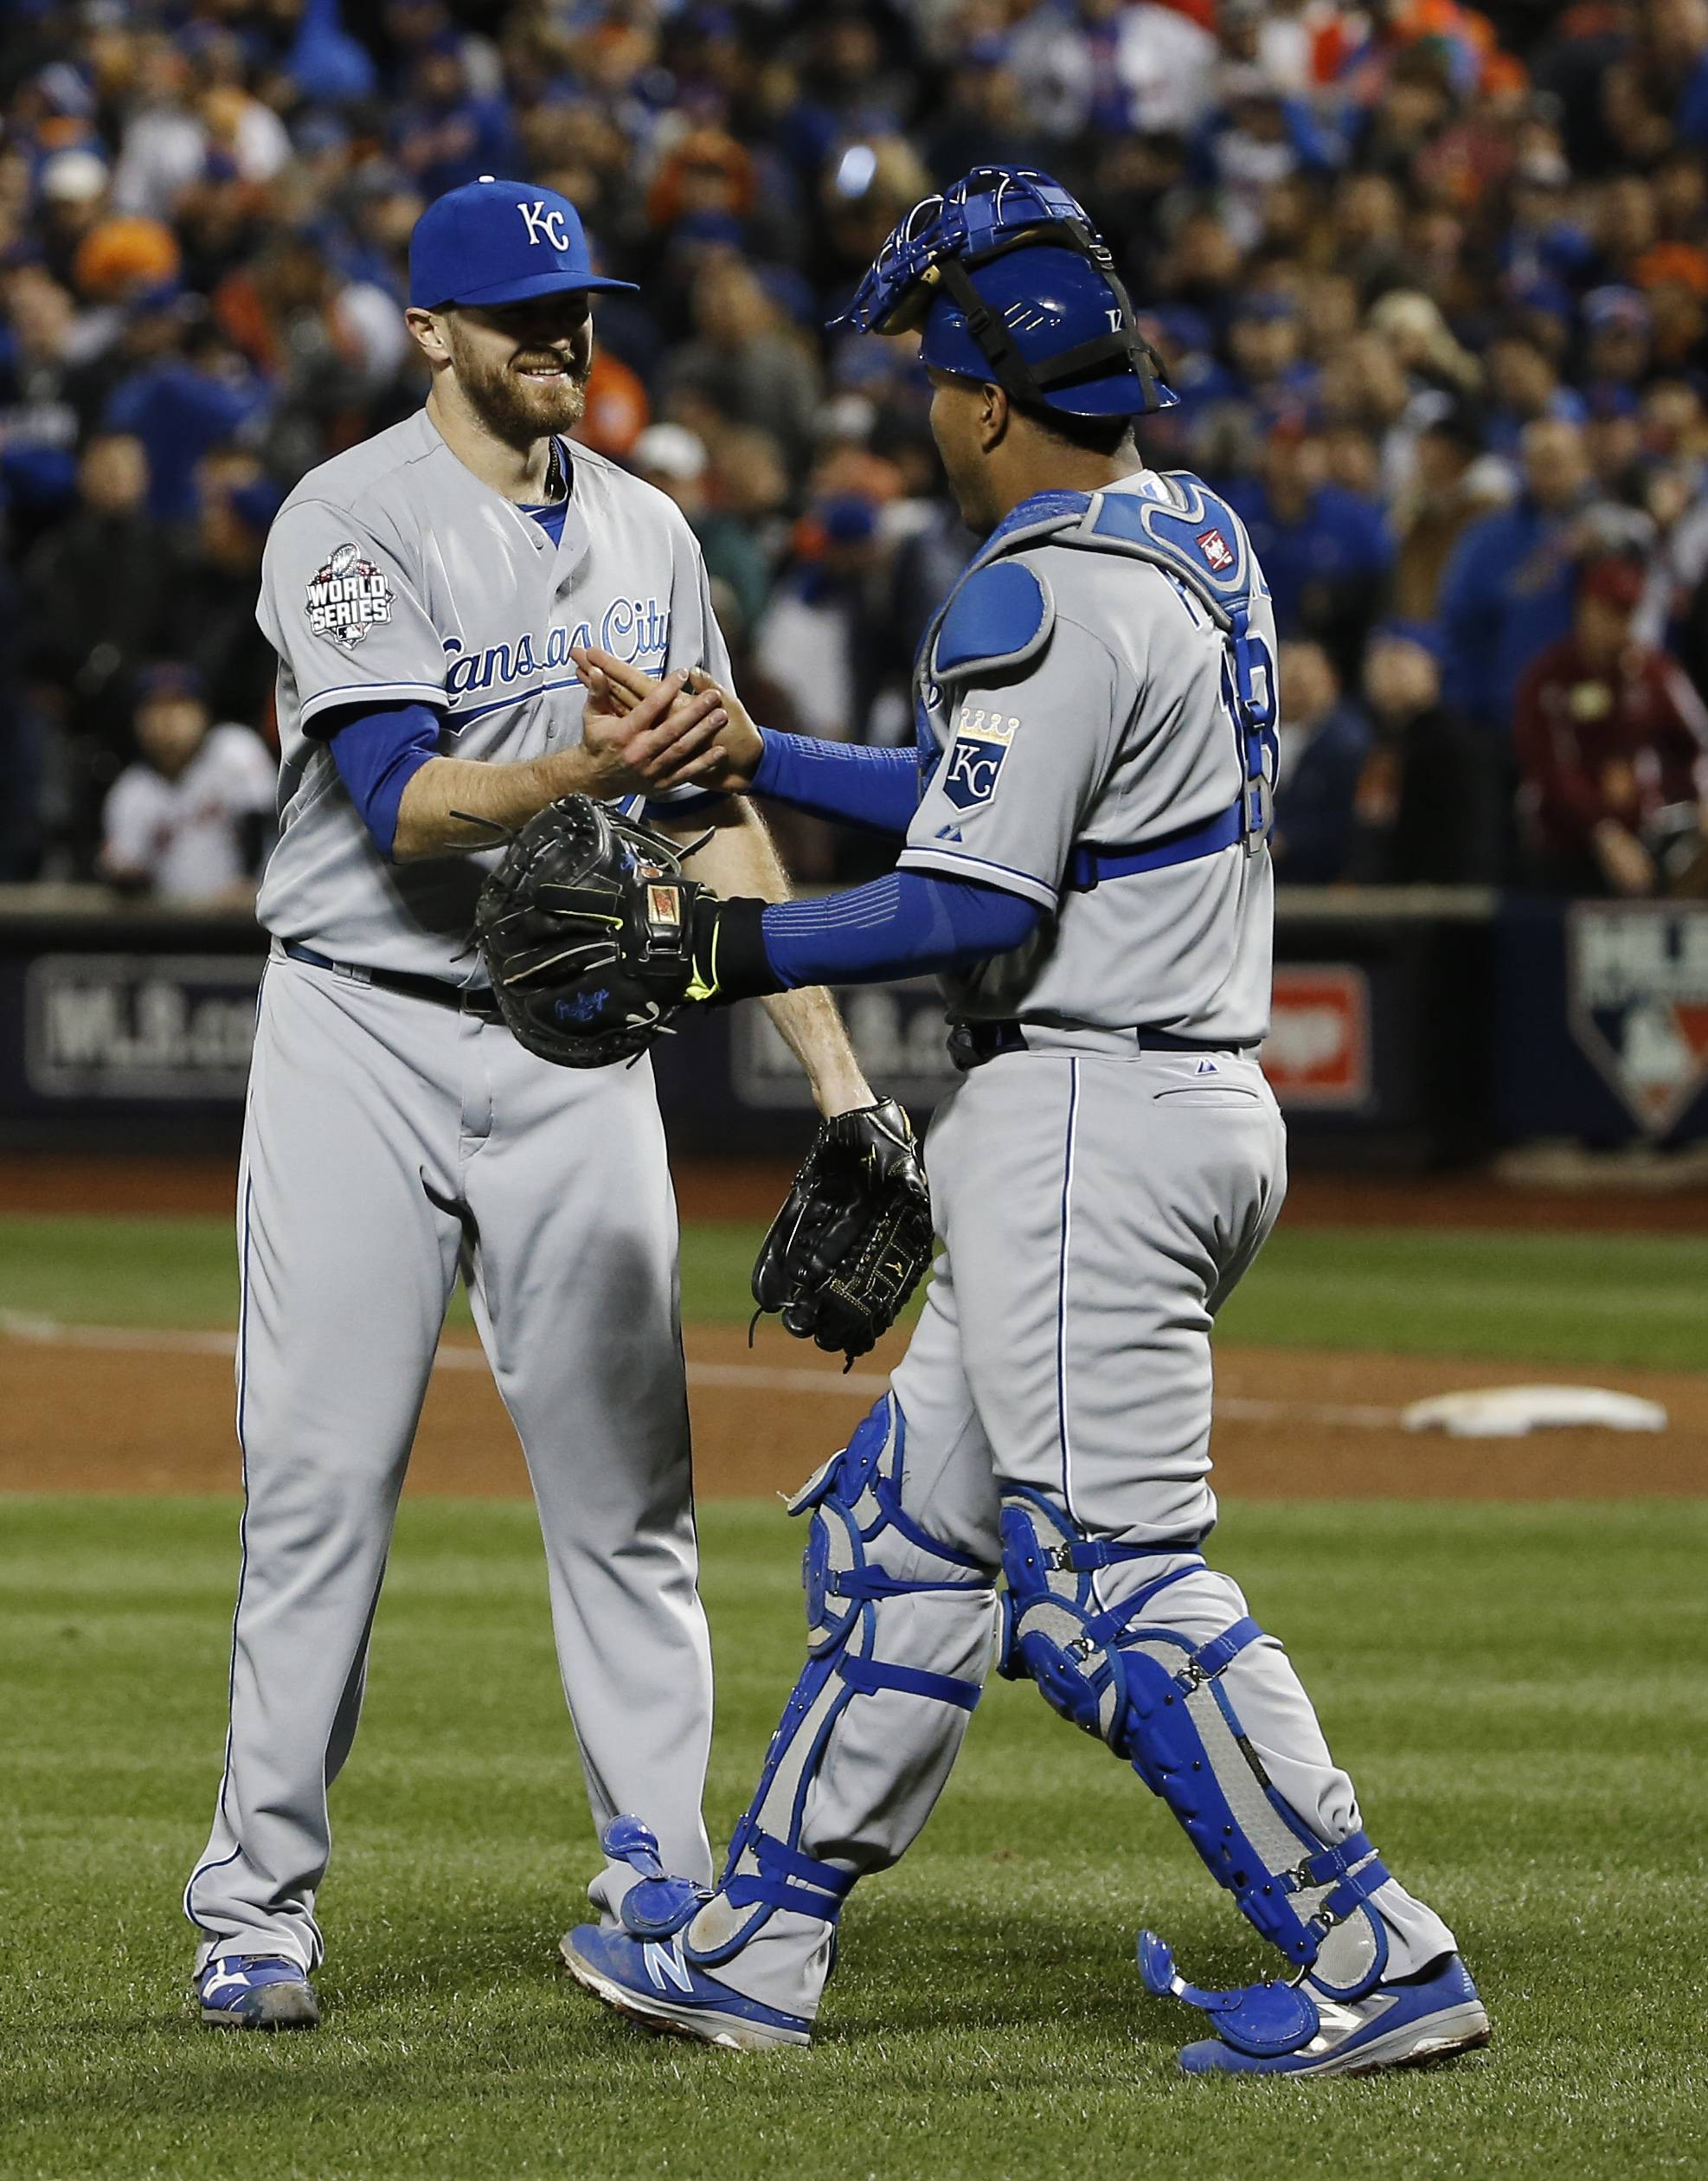 Reliever Wade Davis, left, won a World Series ring with the Kansas City Royals, and has a chance to get another as the new closer for the Chicago Cubs.